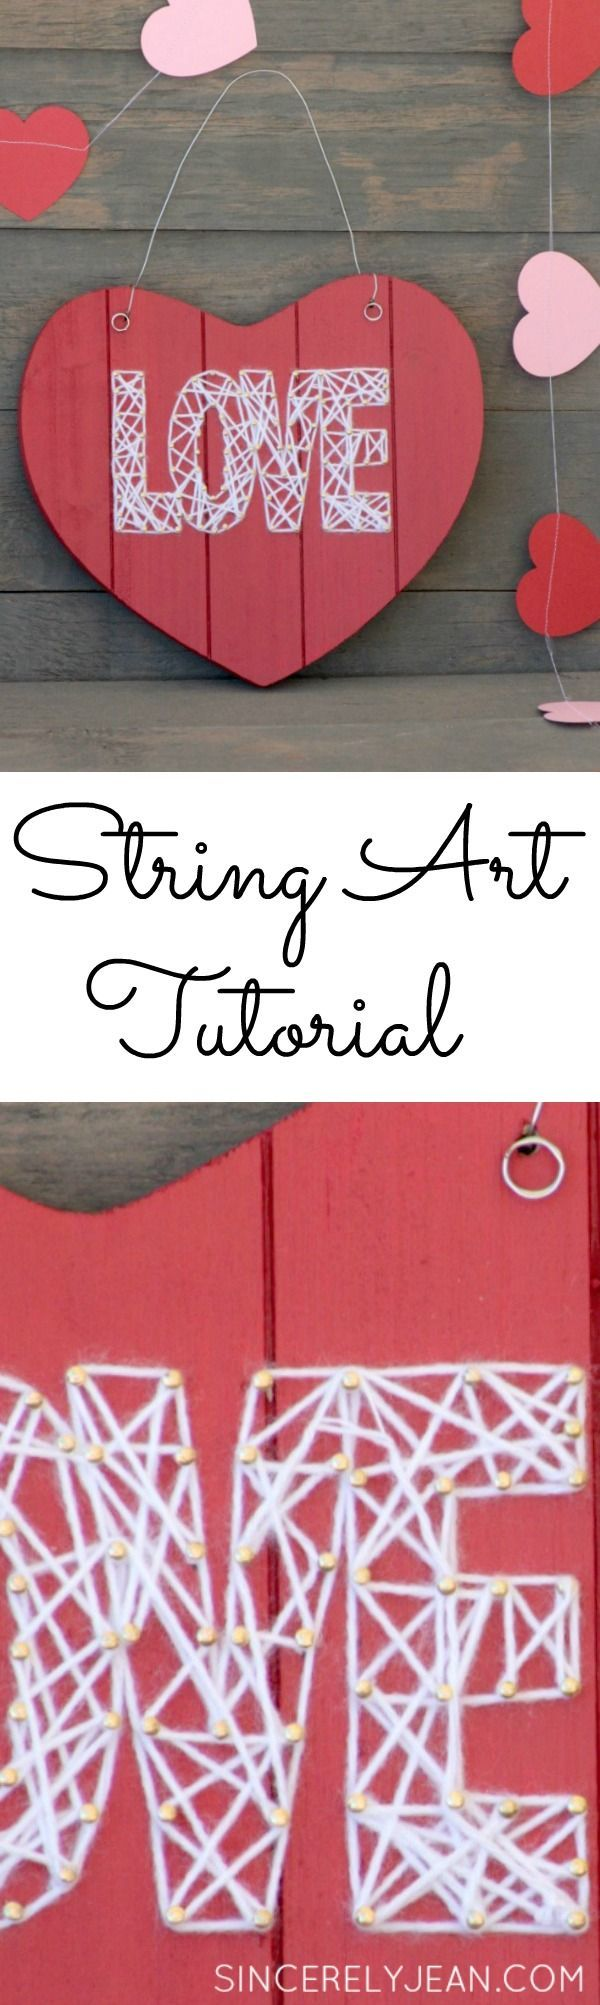 Love String Art Craft -perfect Valentine's Day craft for kids or adults! |www.sincerelyjean.com